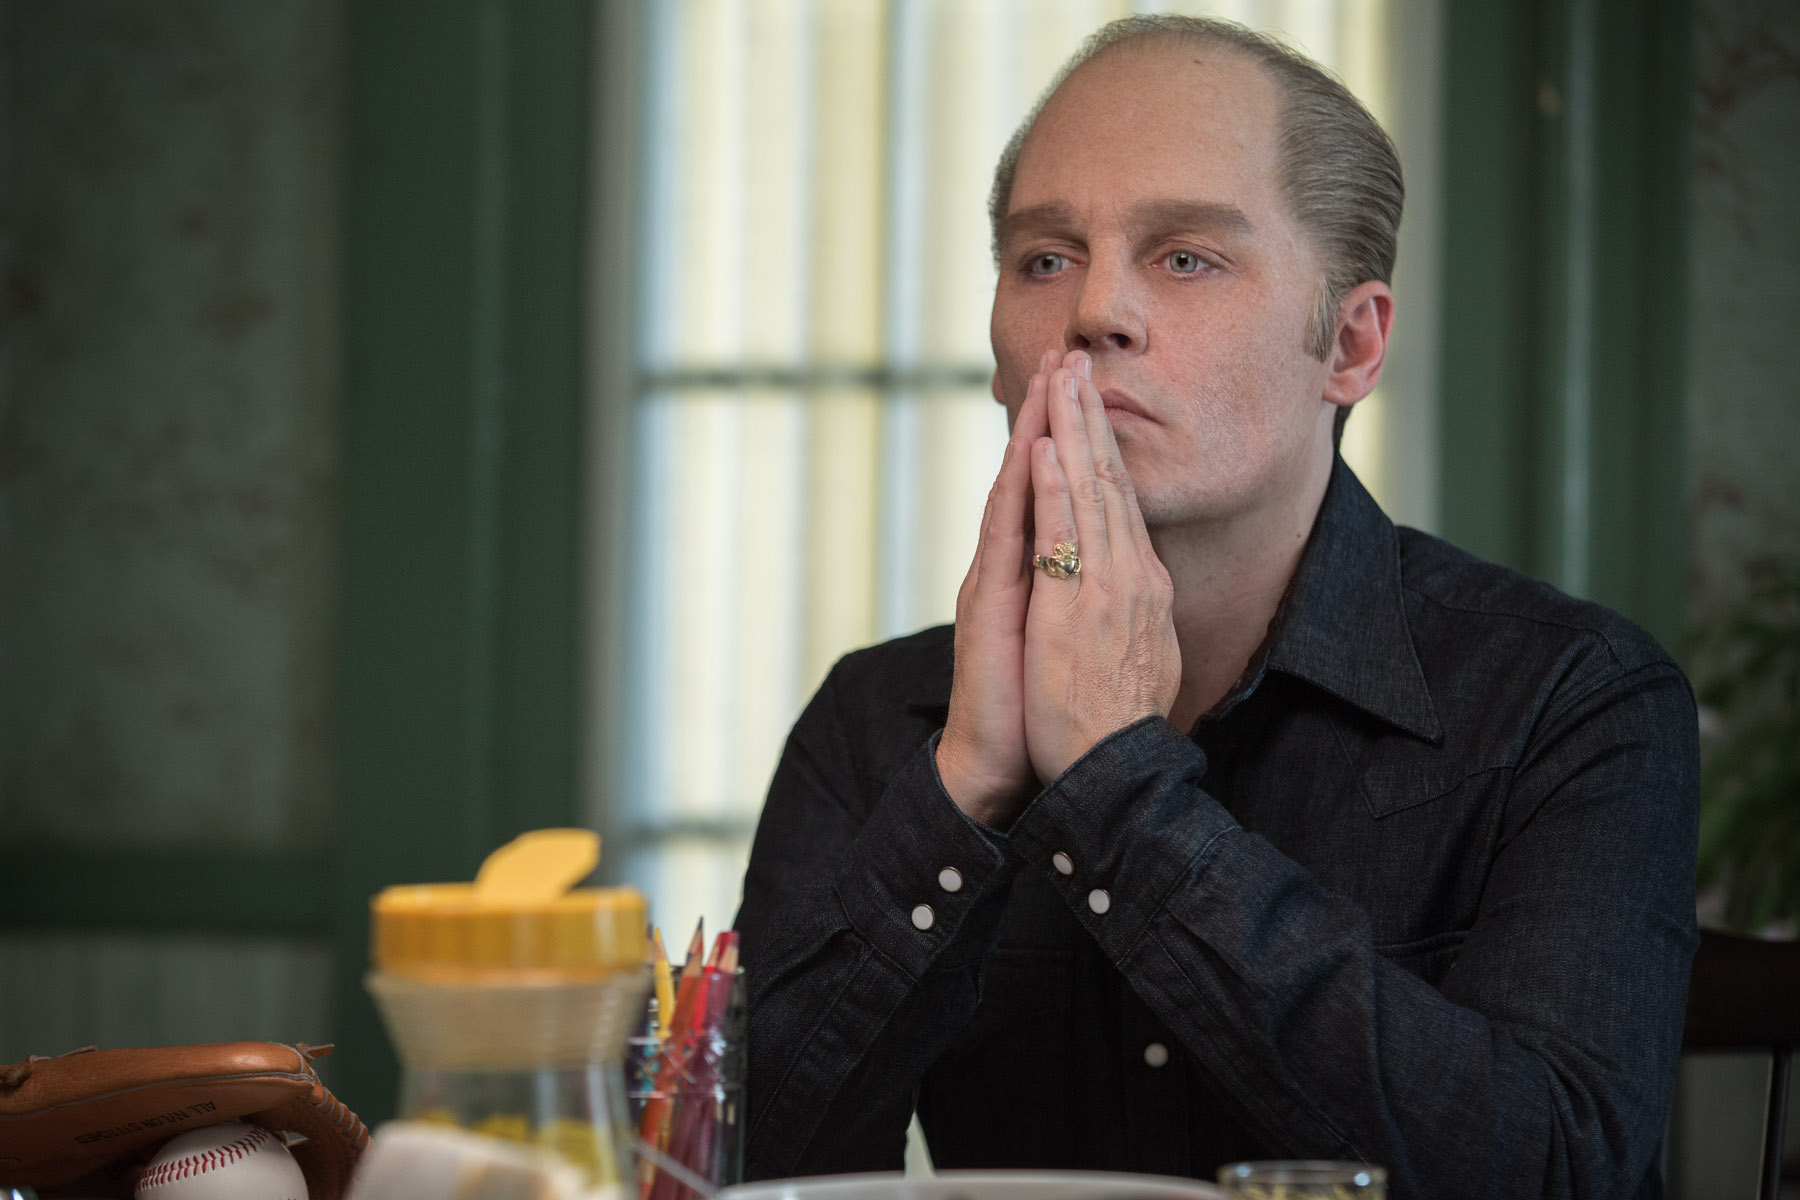 Johnny Depp as Whitey Bulger in the film Black Mass. (Forbes.com)